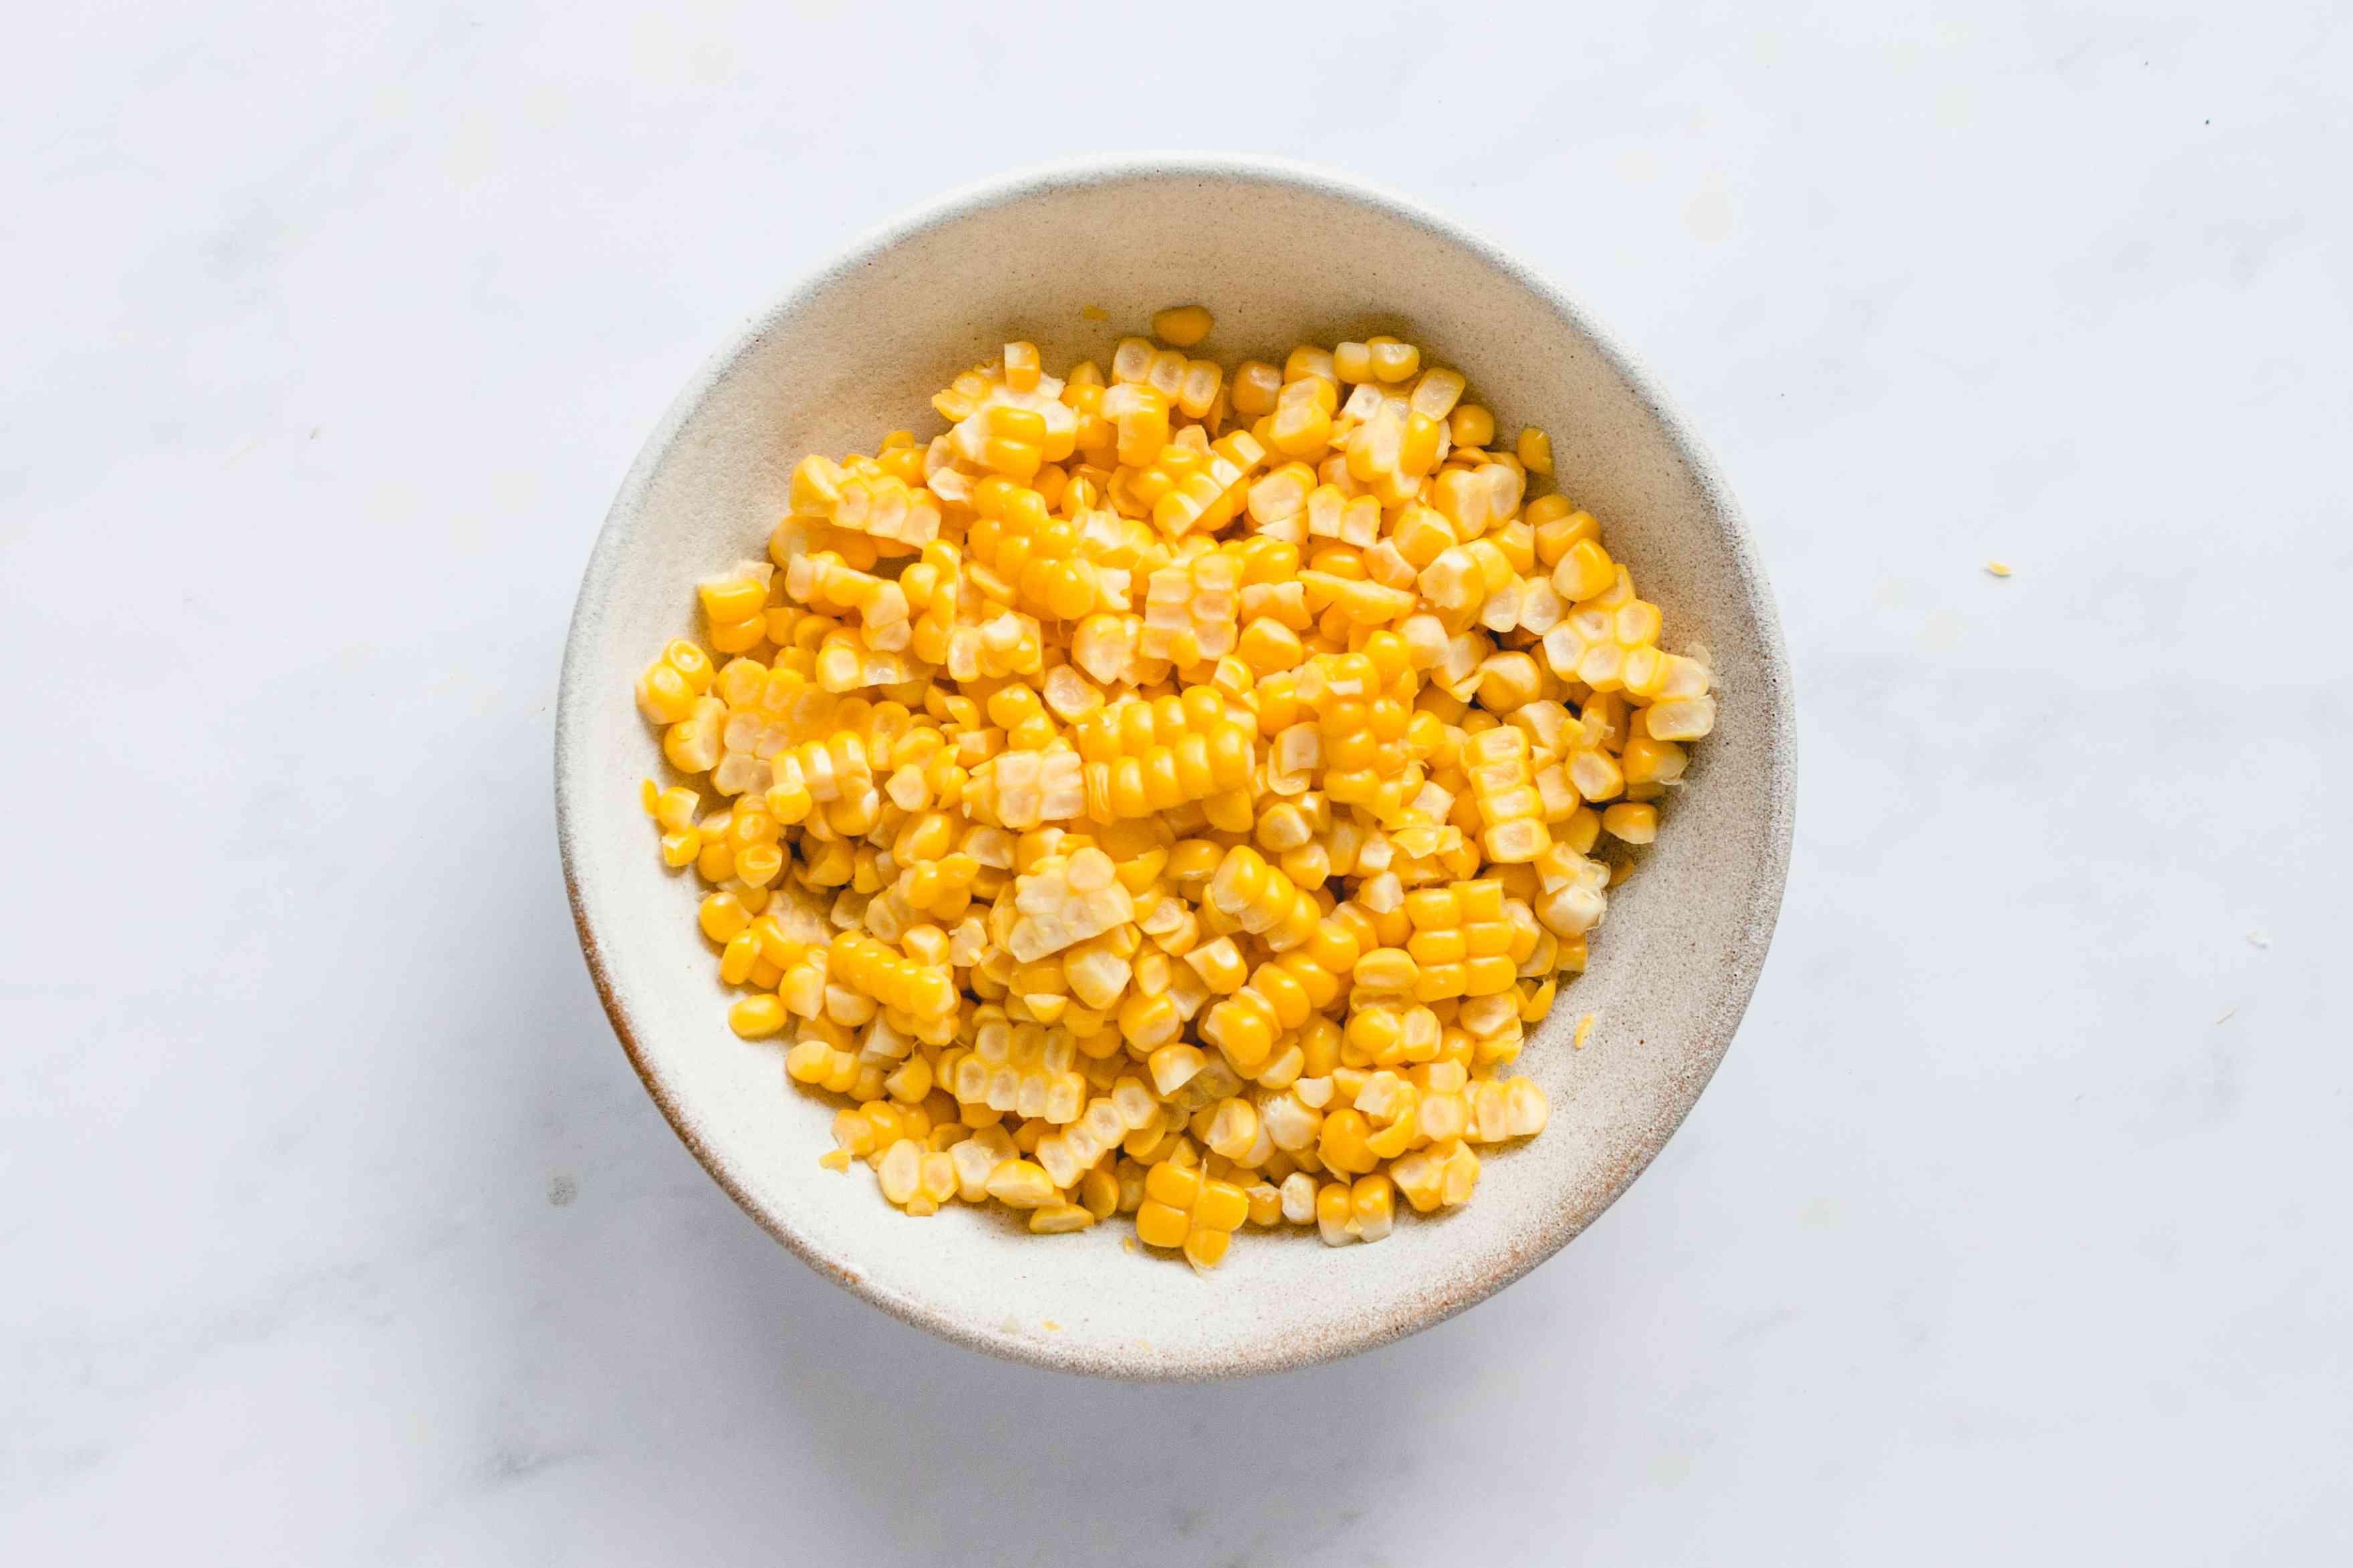 Cut corn kernels from cobs and put into a bowl